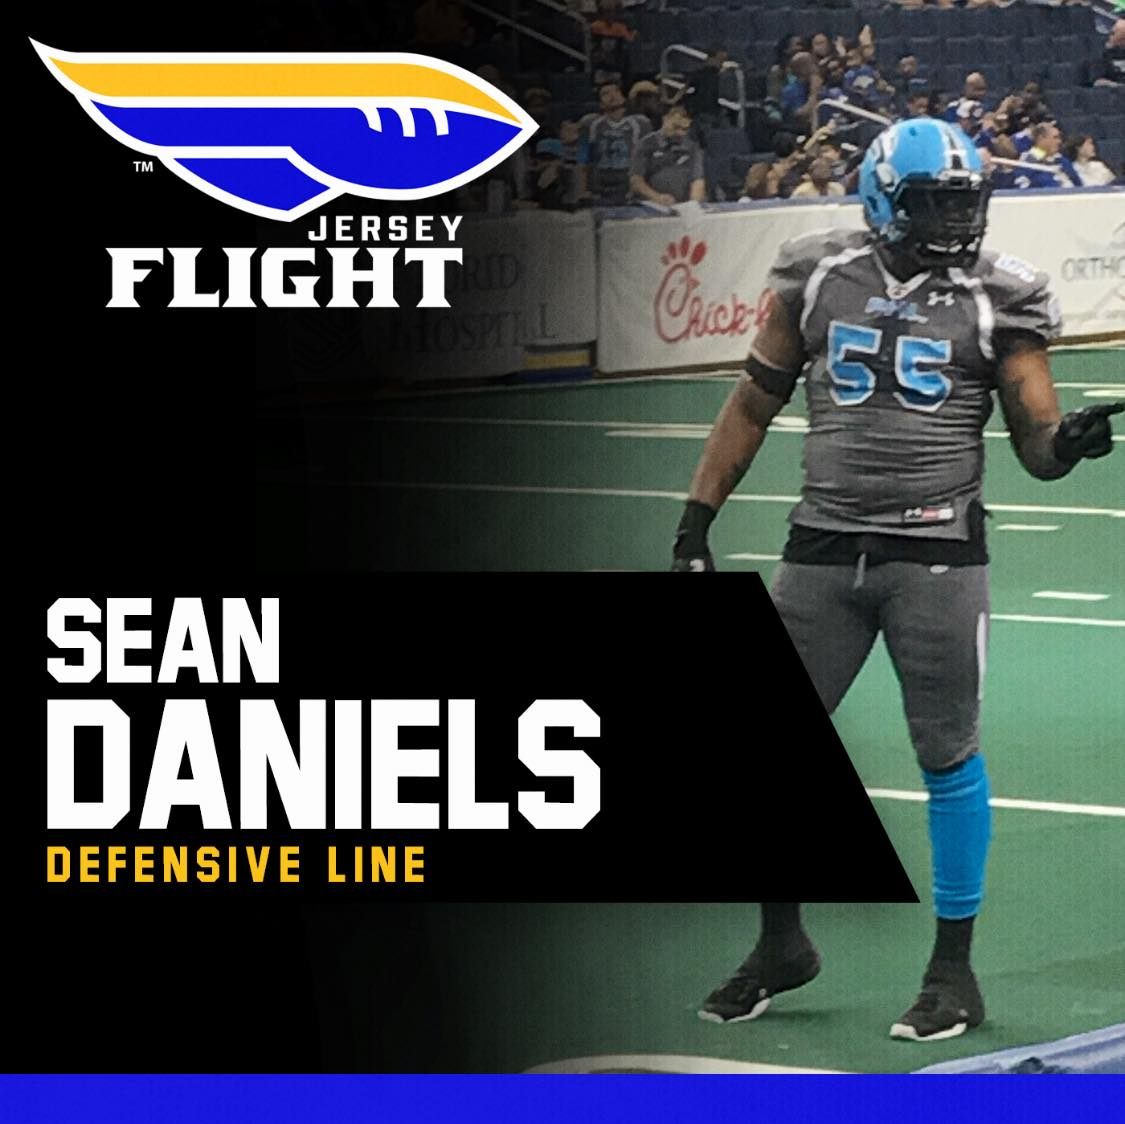 Former Temple University DL Sean Daniels signs with Jersey Flight